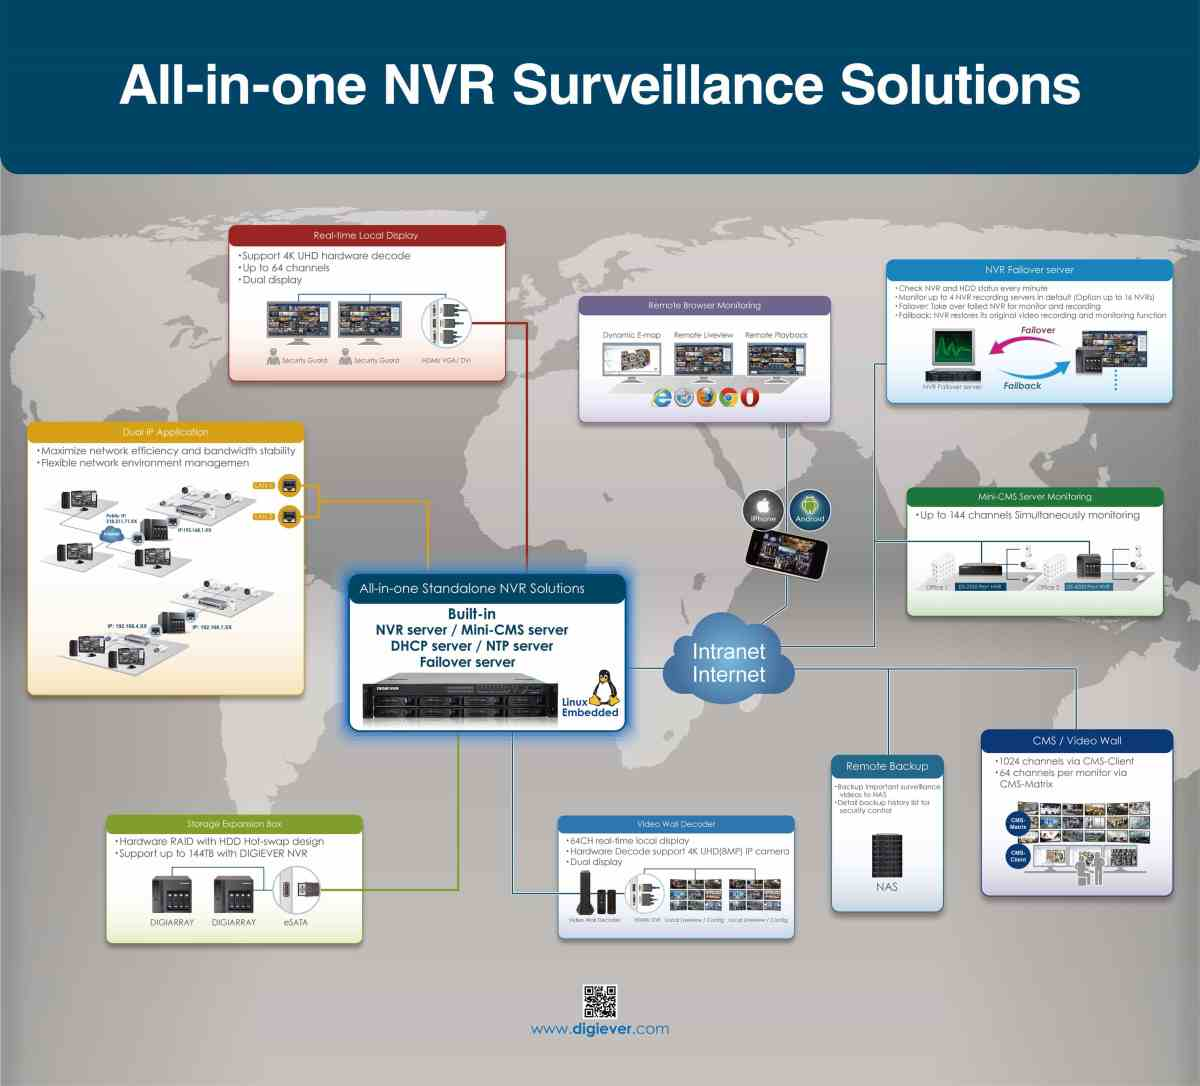 All-in-one_NVR_Surveillance_Solutions